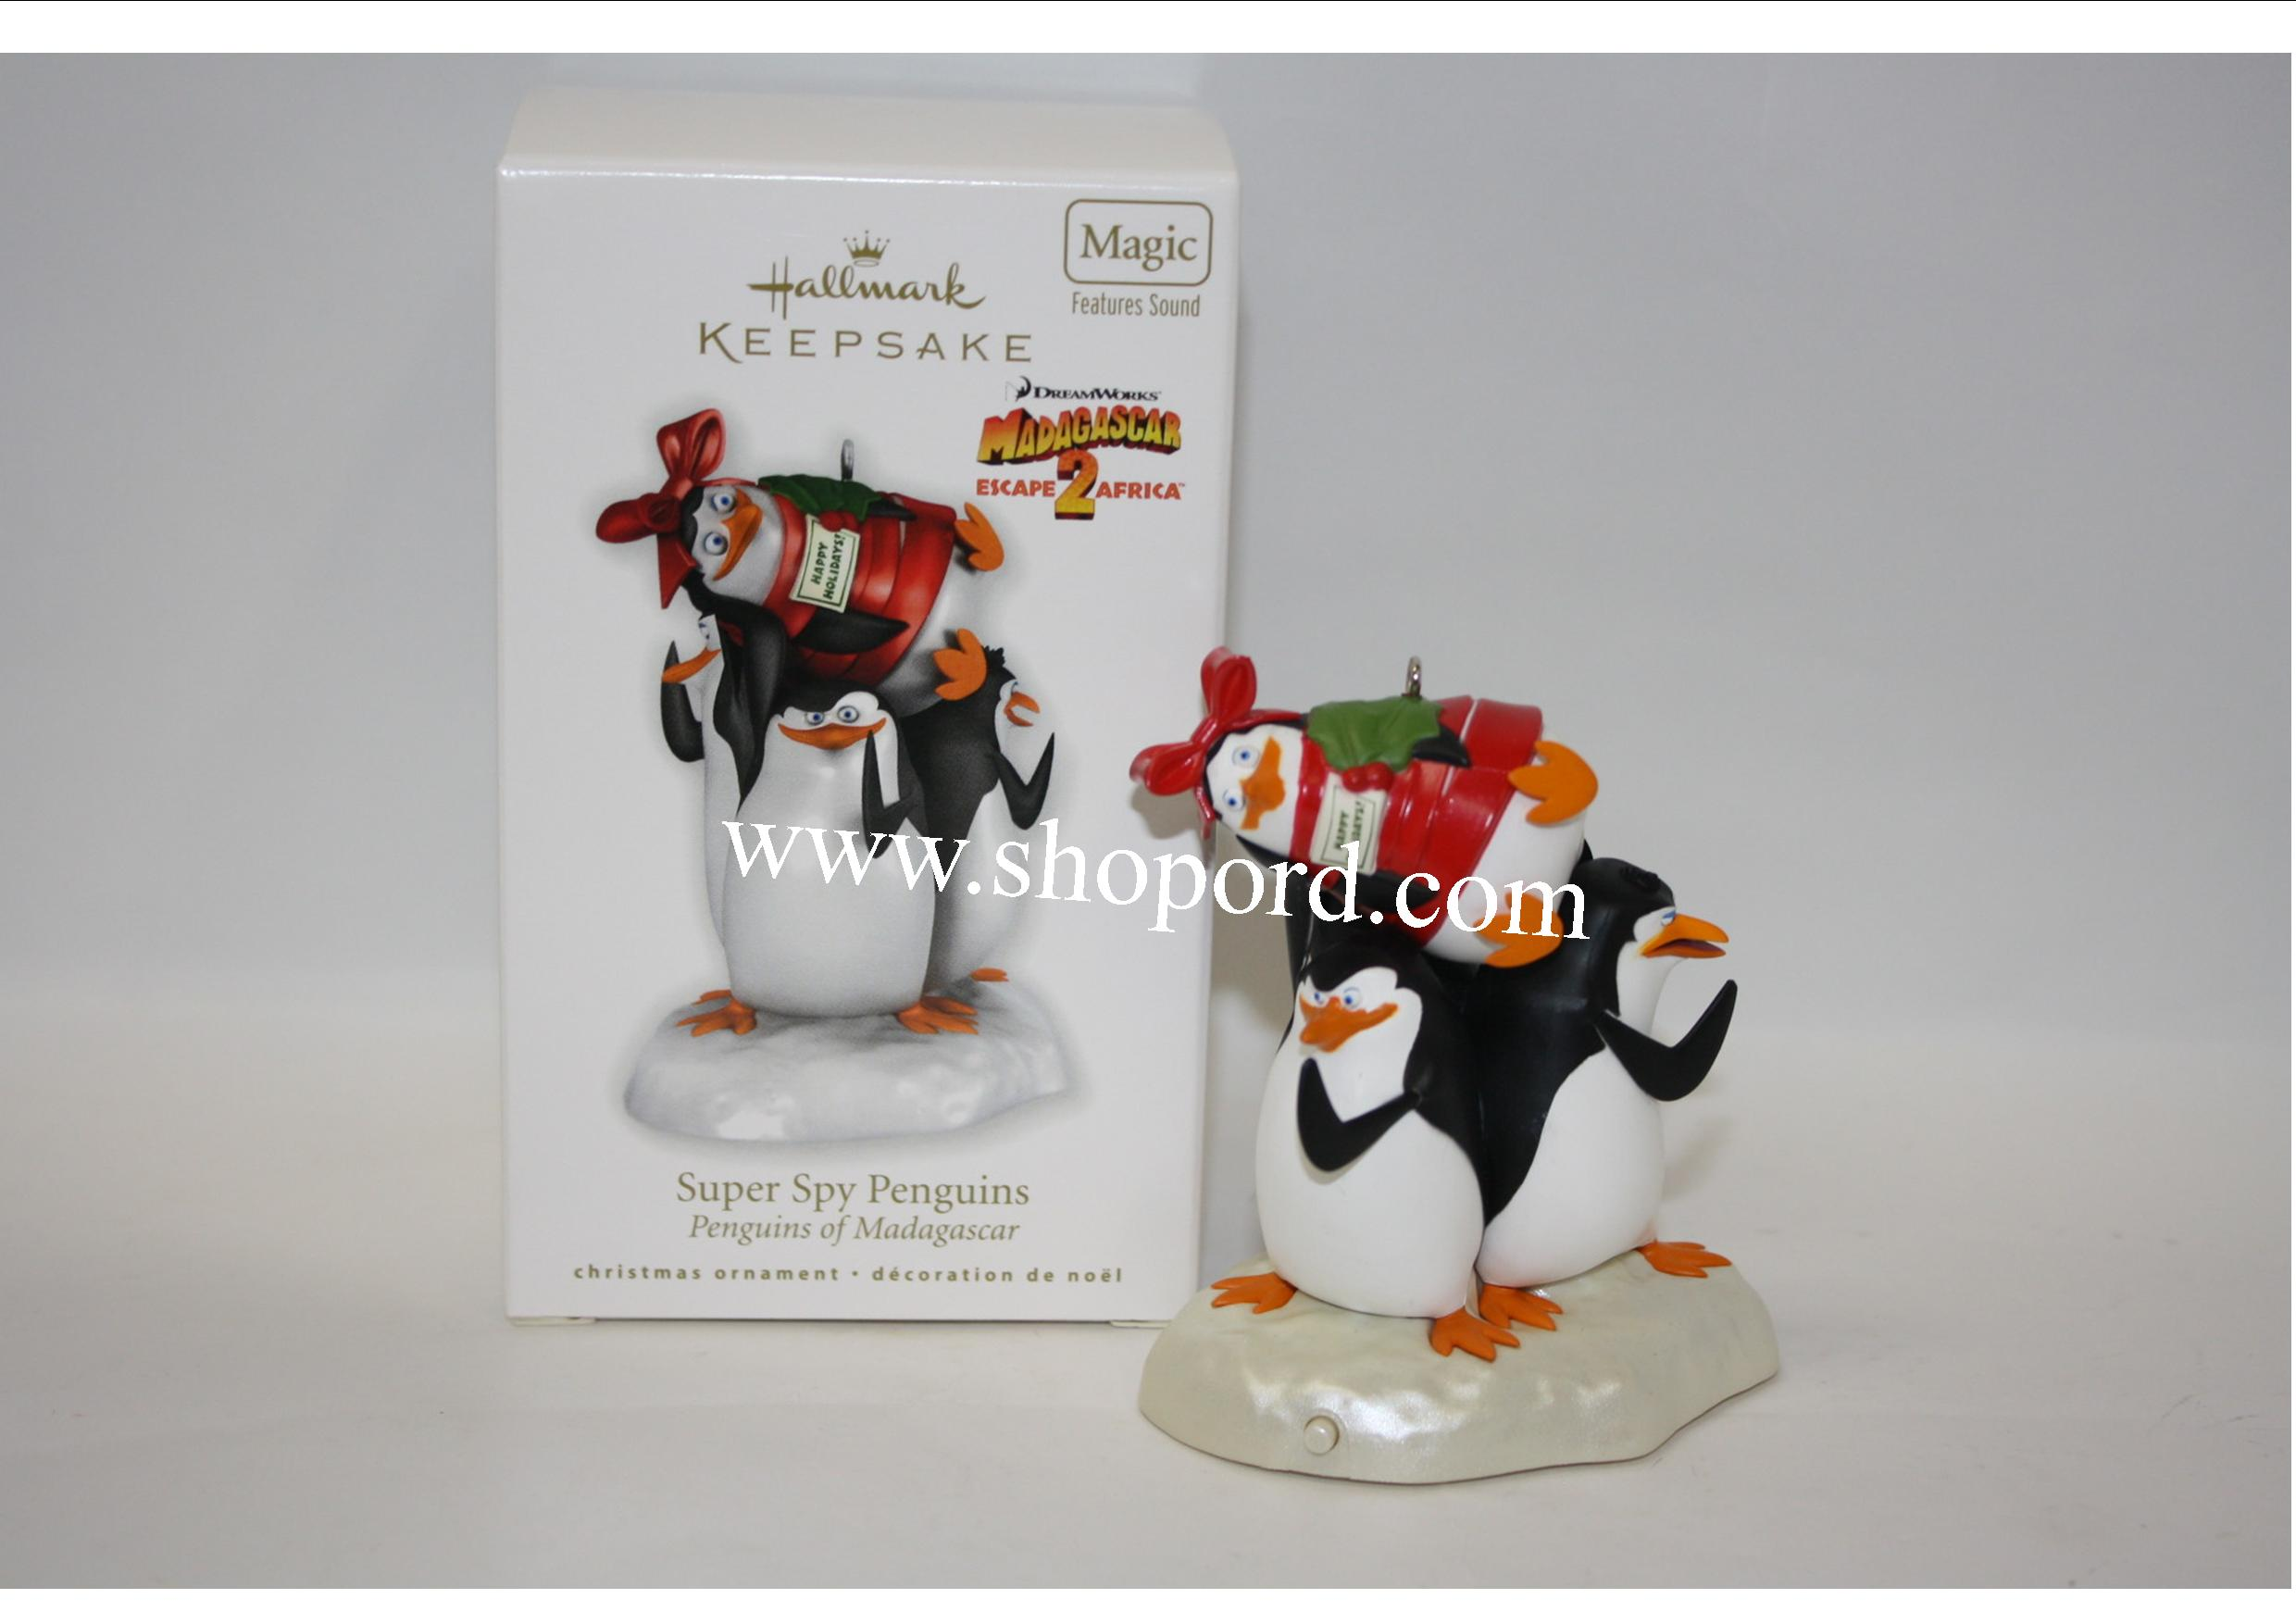 Hallmark 2010 Super Spy Penguins Penguins of Madagascar Ornament QXI2356 Box Damaged